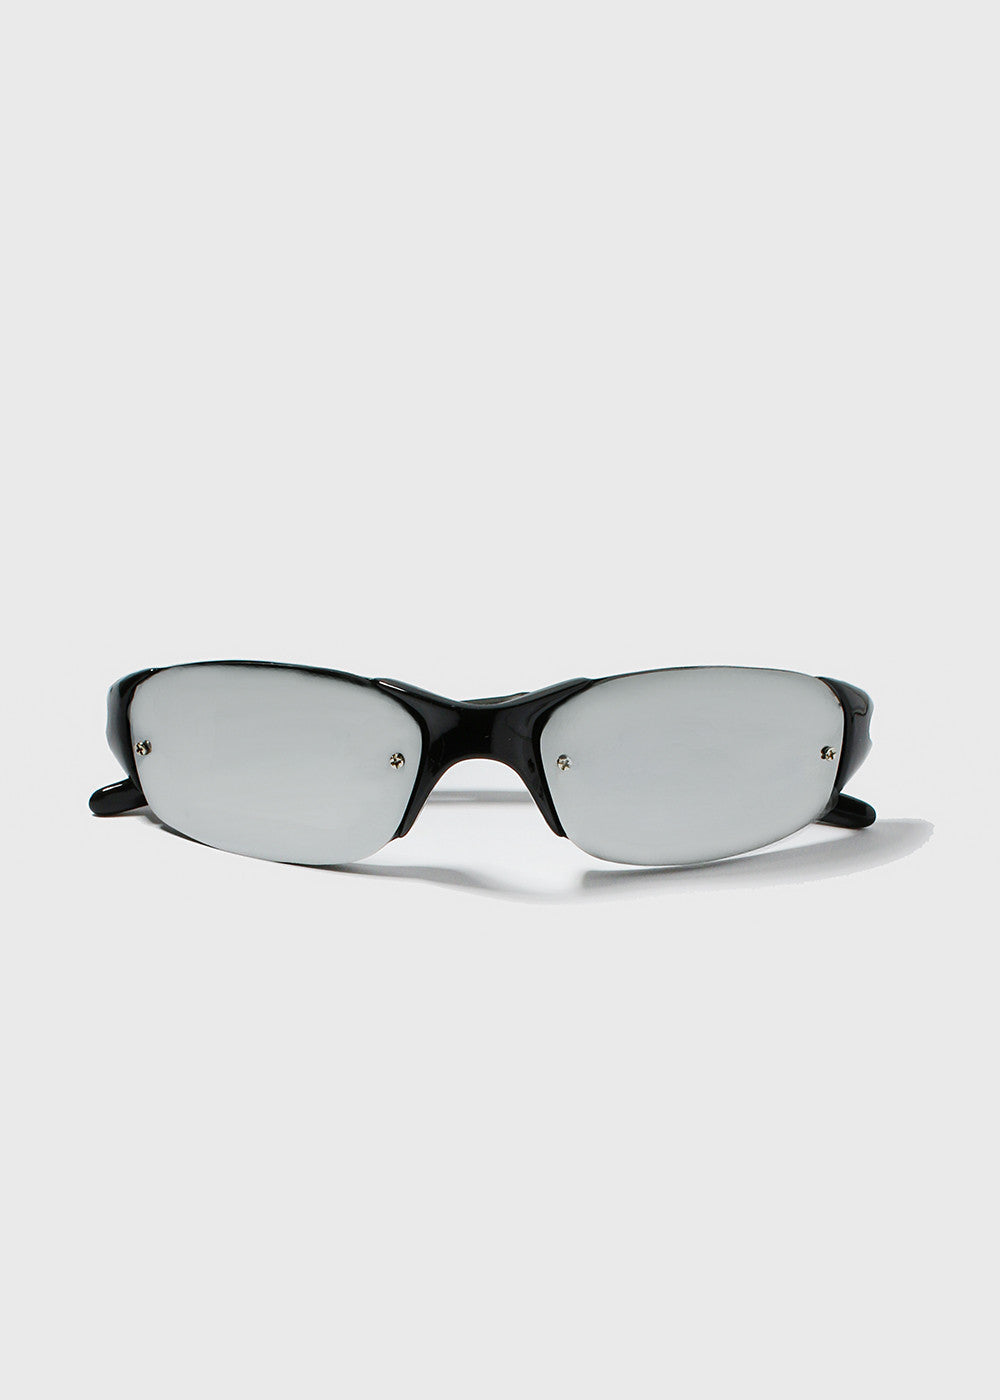 Sport Sunglasses- Silver/Black